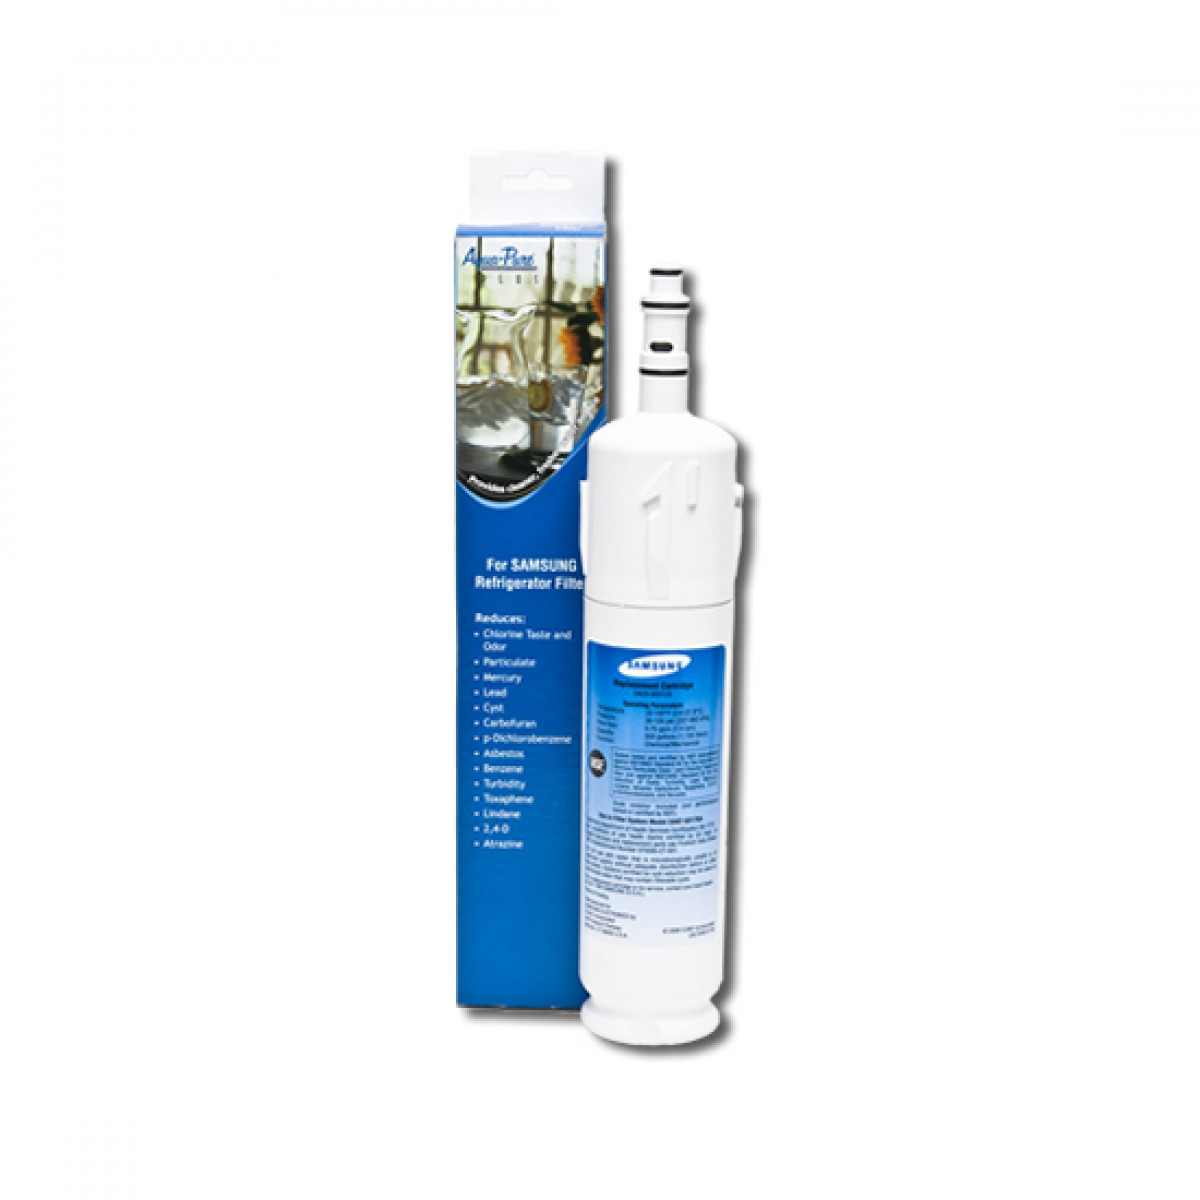 samsung refrigerator water filter replacement instructions